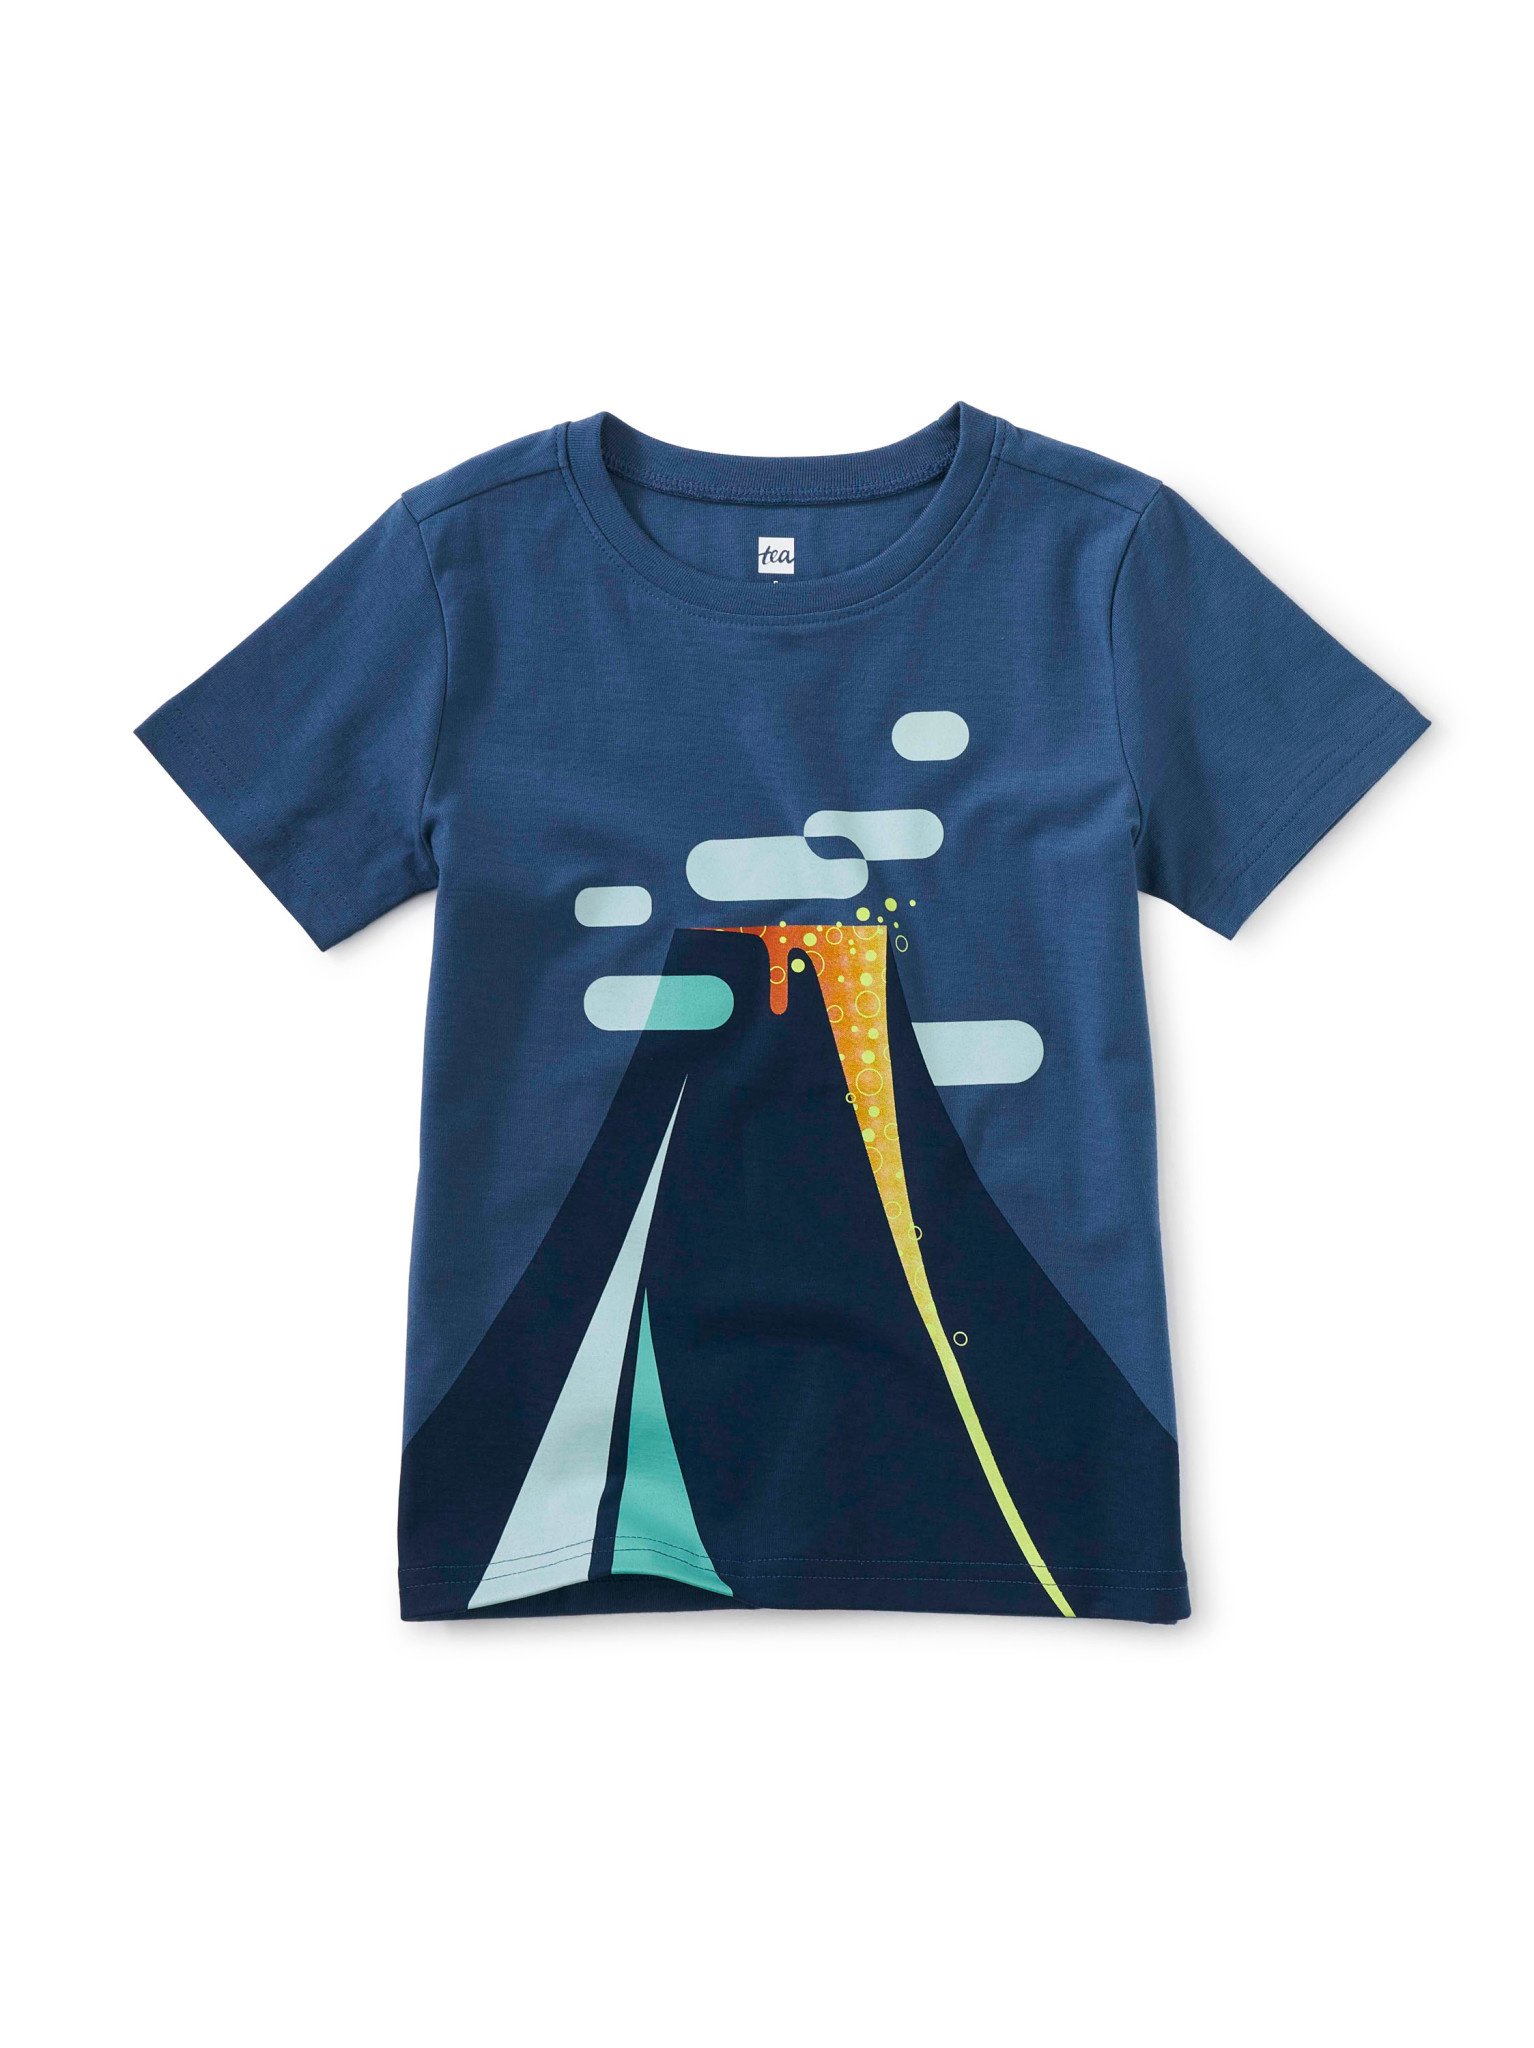 Tea Collection Graphic Tee